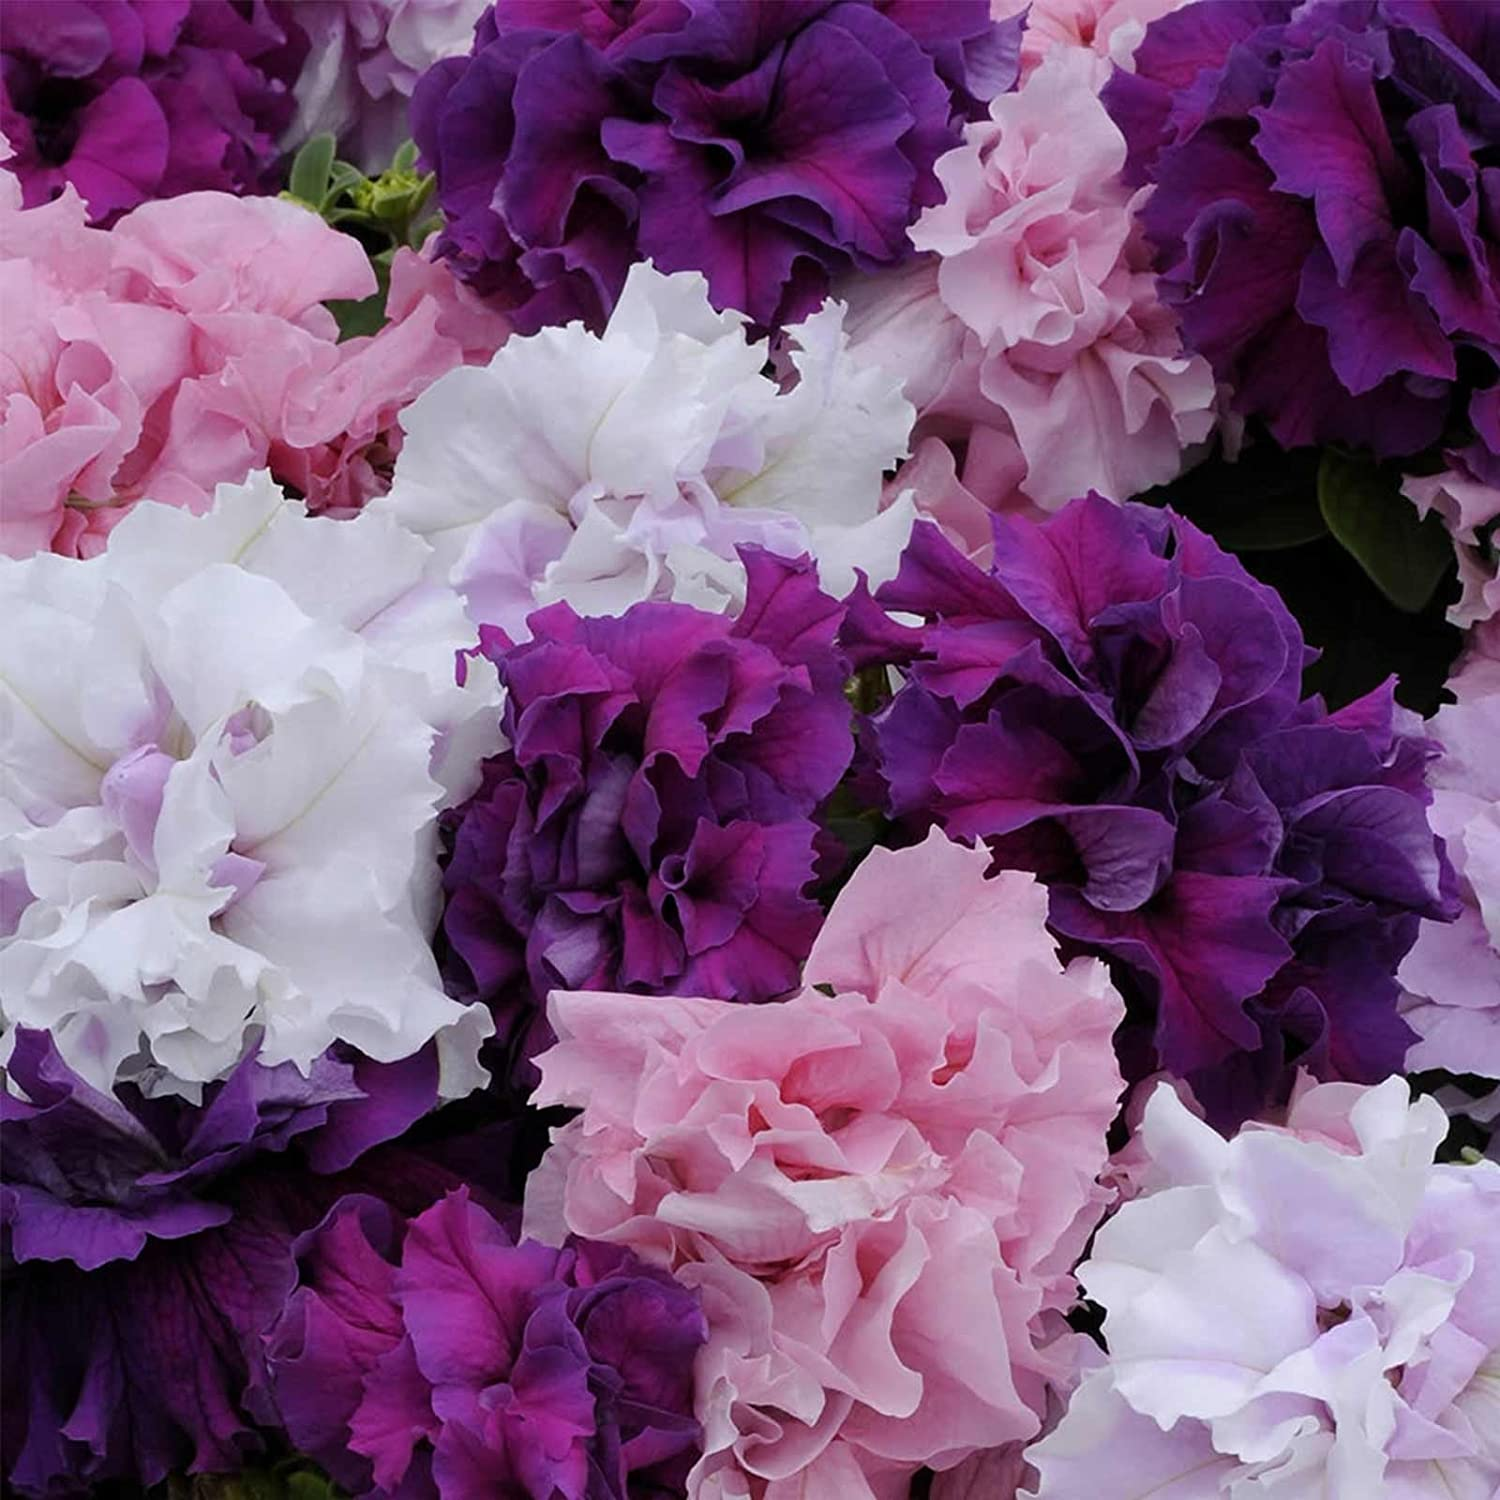 Petunia - Double Cascade Series Flower Garden Seed - 1000 Pelleted Seeds - Color Mix Blooms- Annual Flowers - Double Grandiflora Petunias